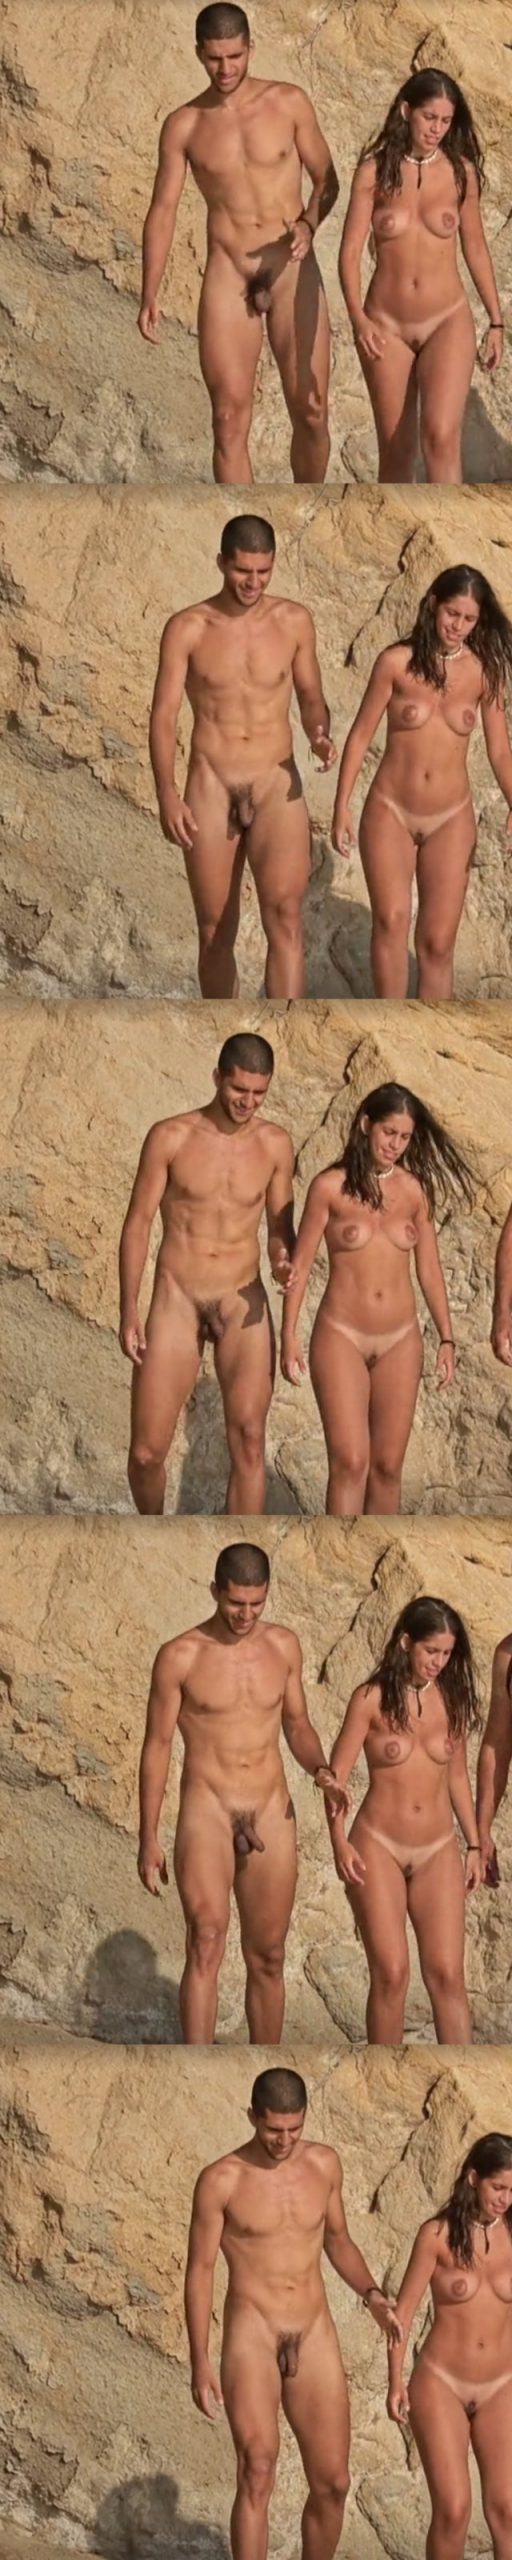 straight nudist guy caught naked over a naturist beach by hidden cam